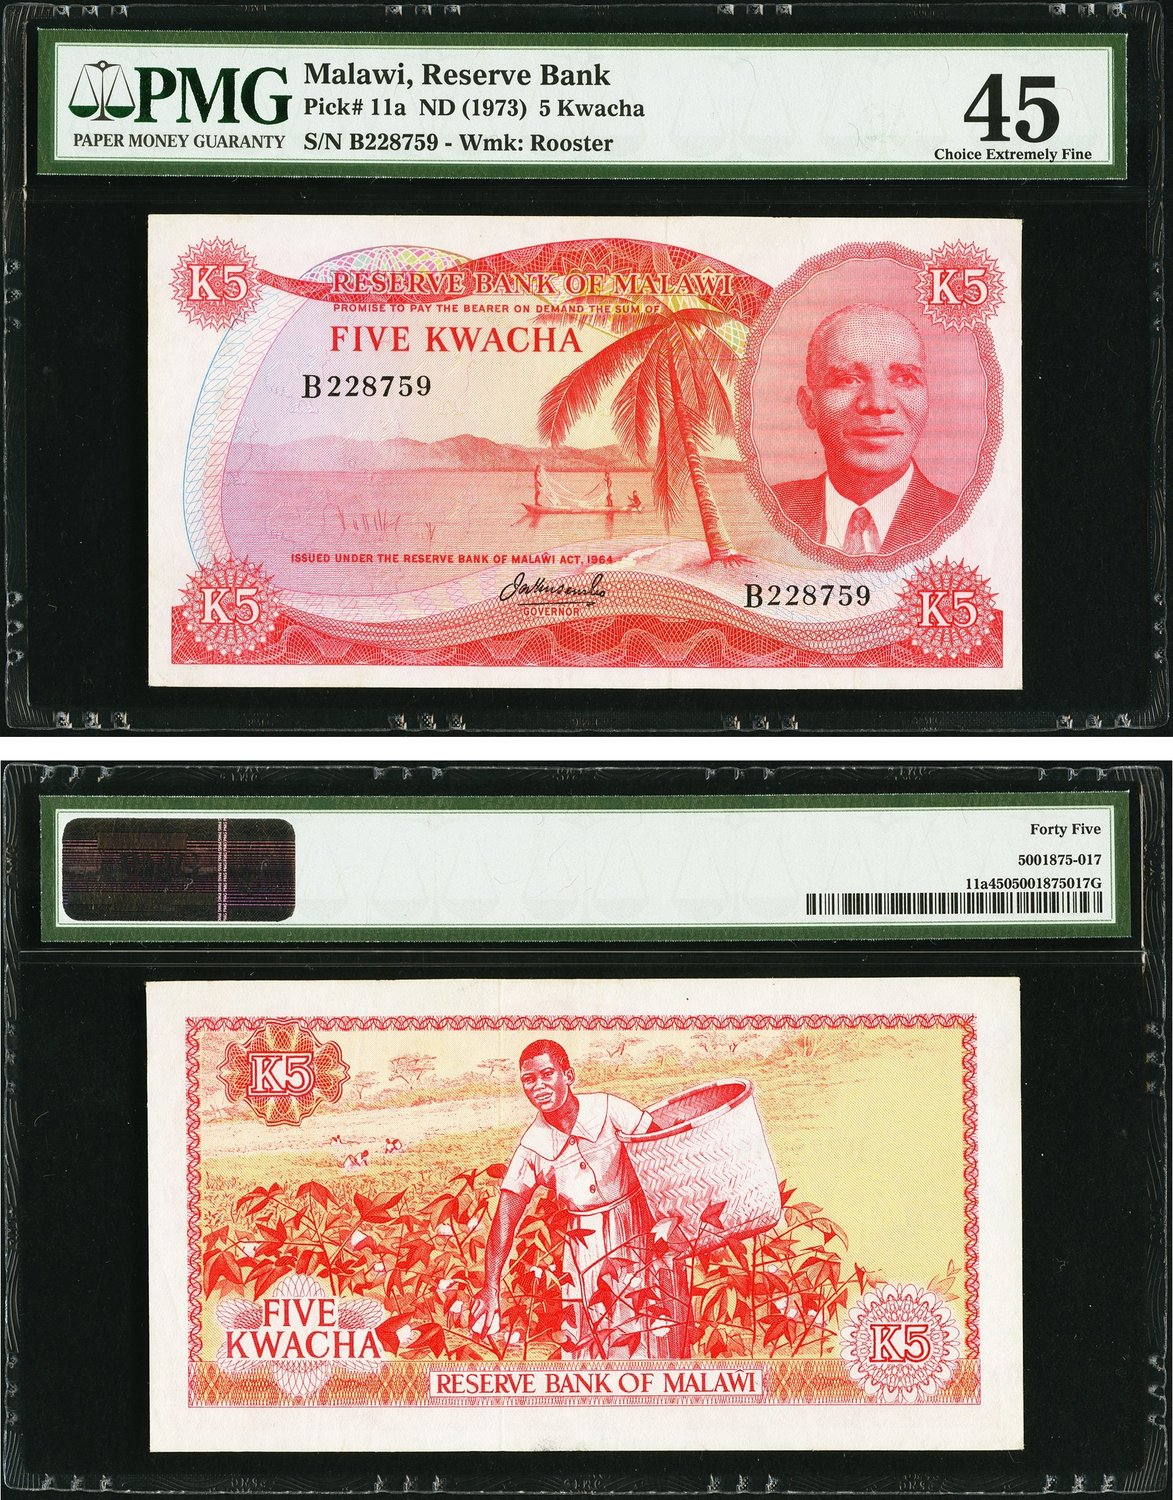 World Currency Malawi Reserve Bank Of 5 Kwacha Nd 1973 Pick 11a A Cotton Picker Is Featured On The Back